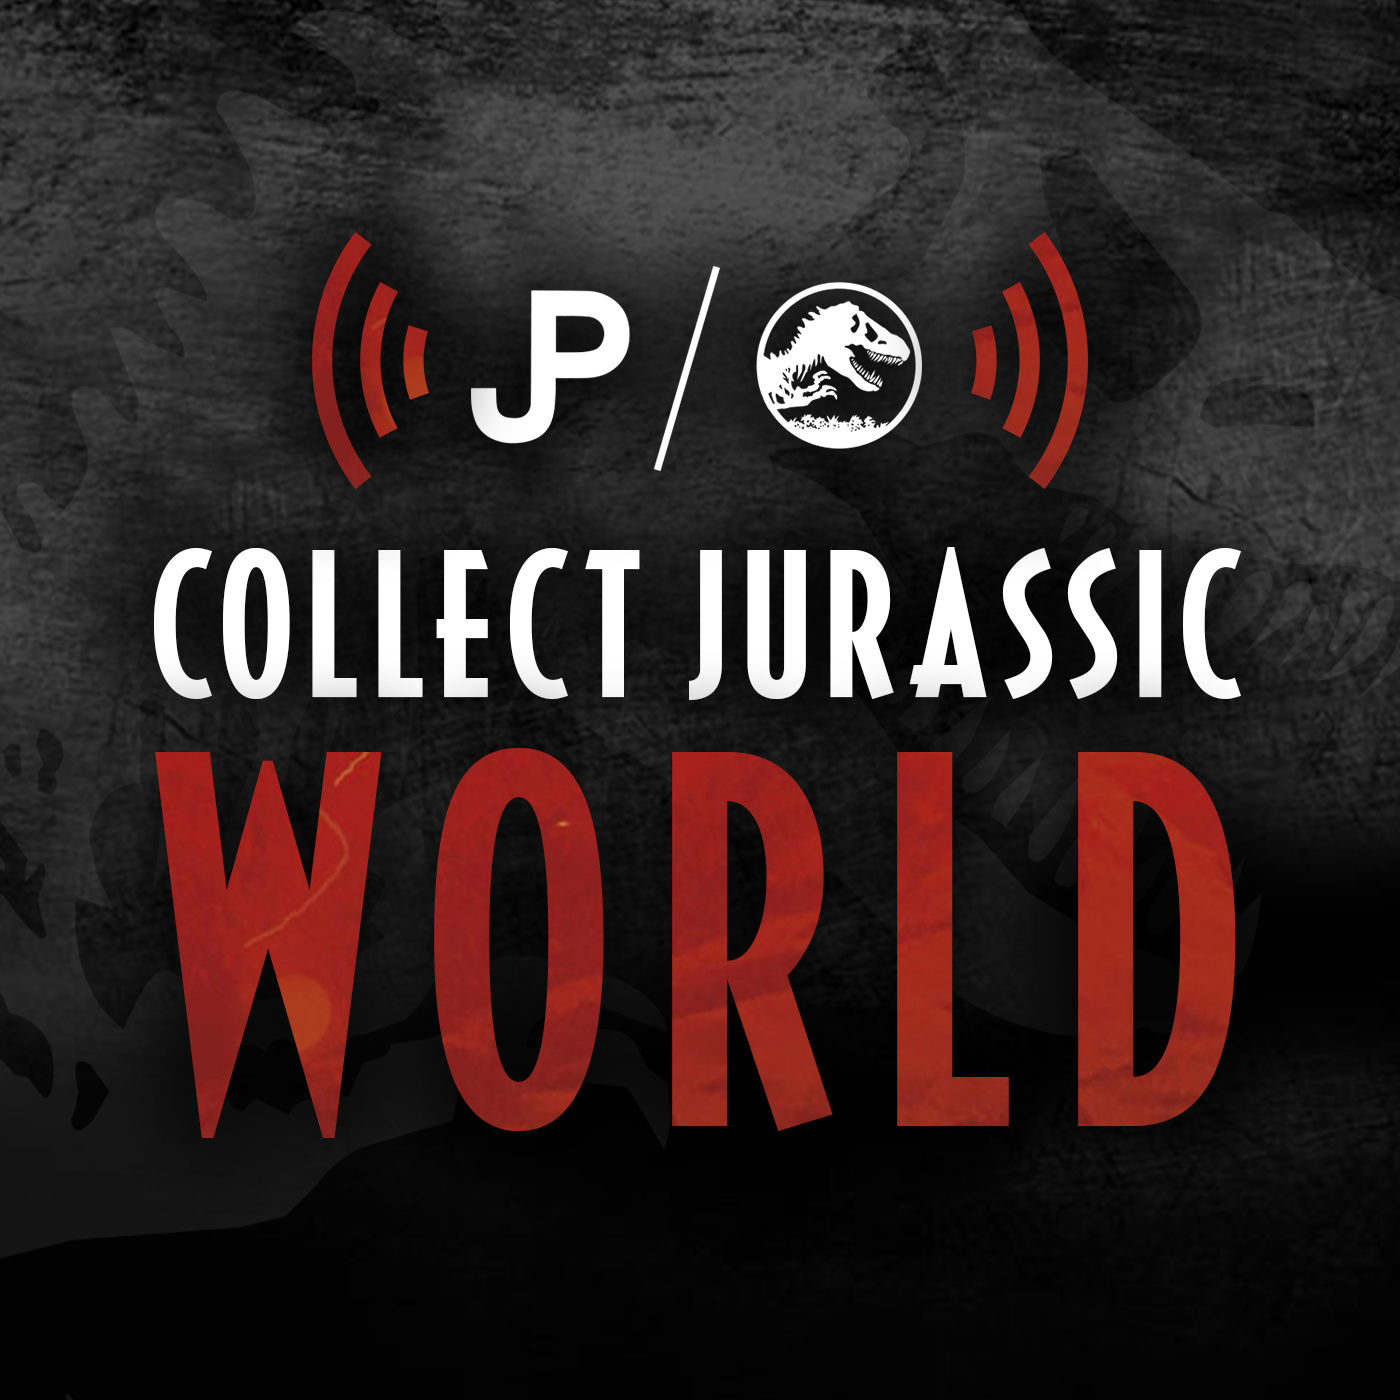 Collect Jurassic World